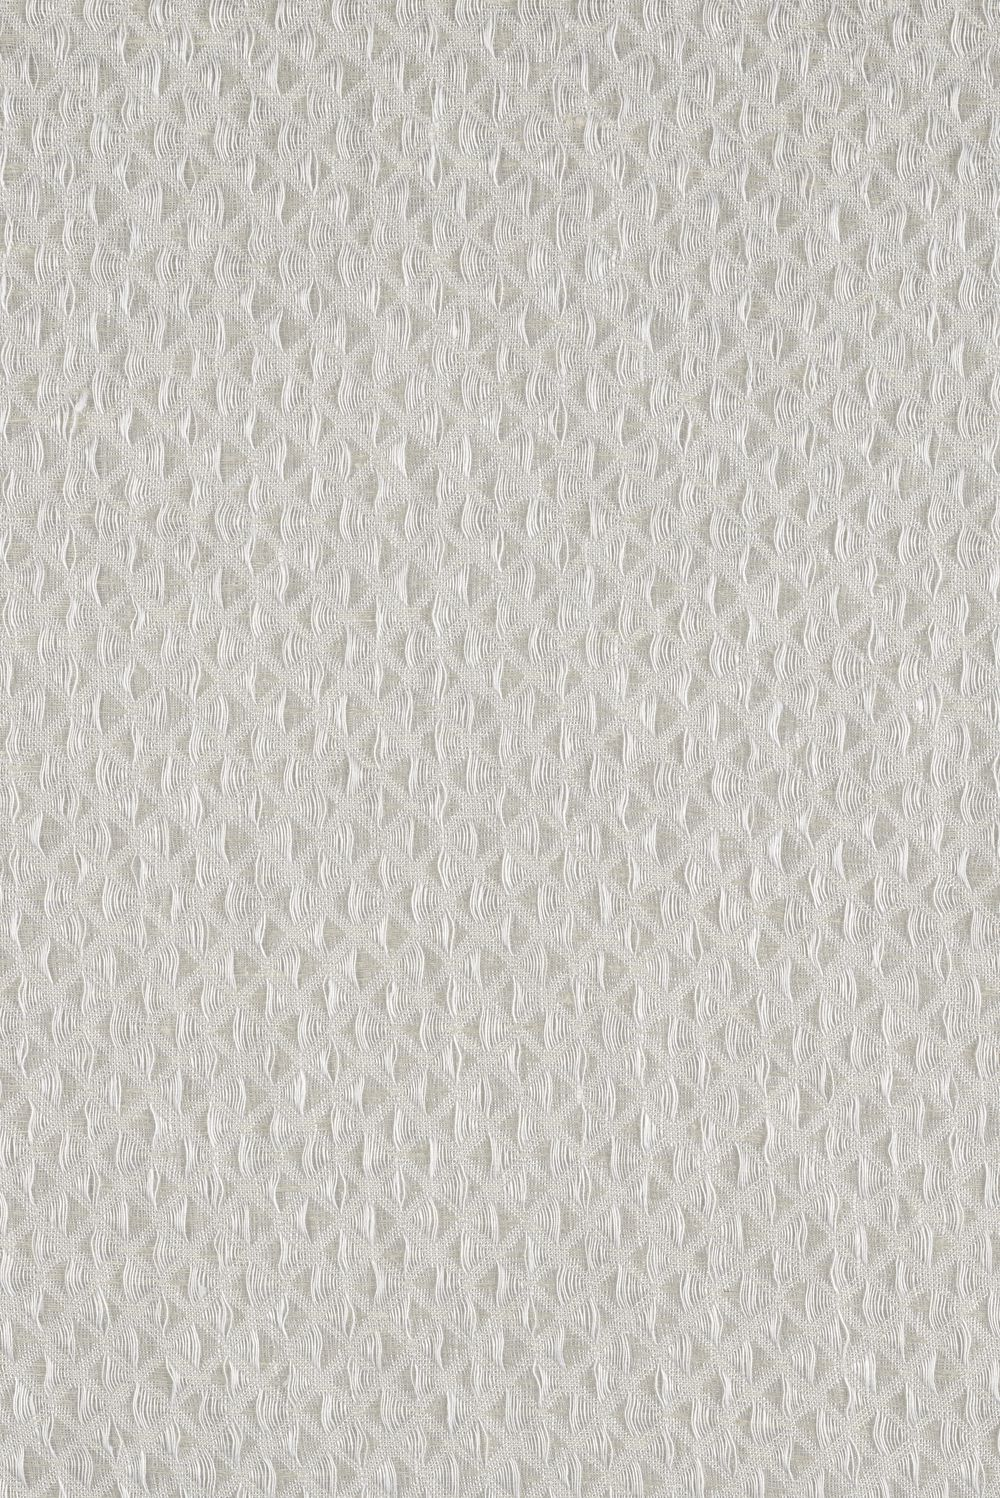 Photo of the fabric Origami Oyster swatch by Mokum. Use for Curtains. Style of Plain, Texture